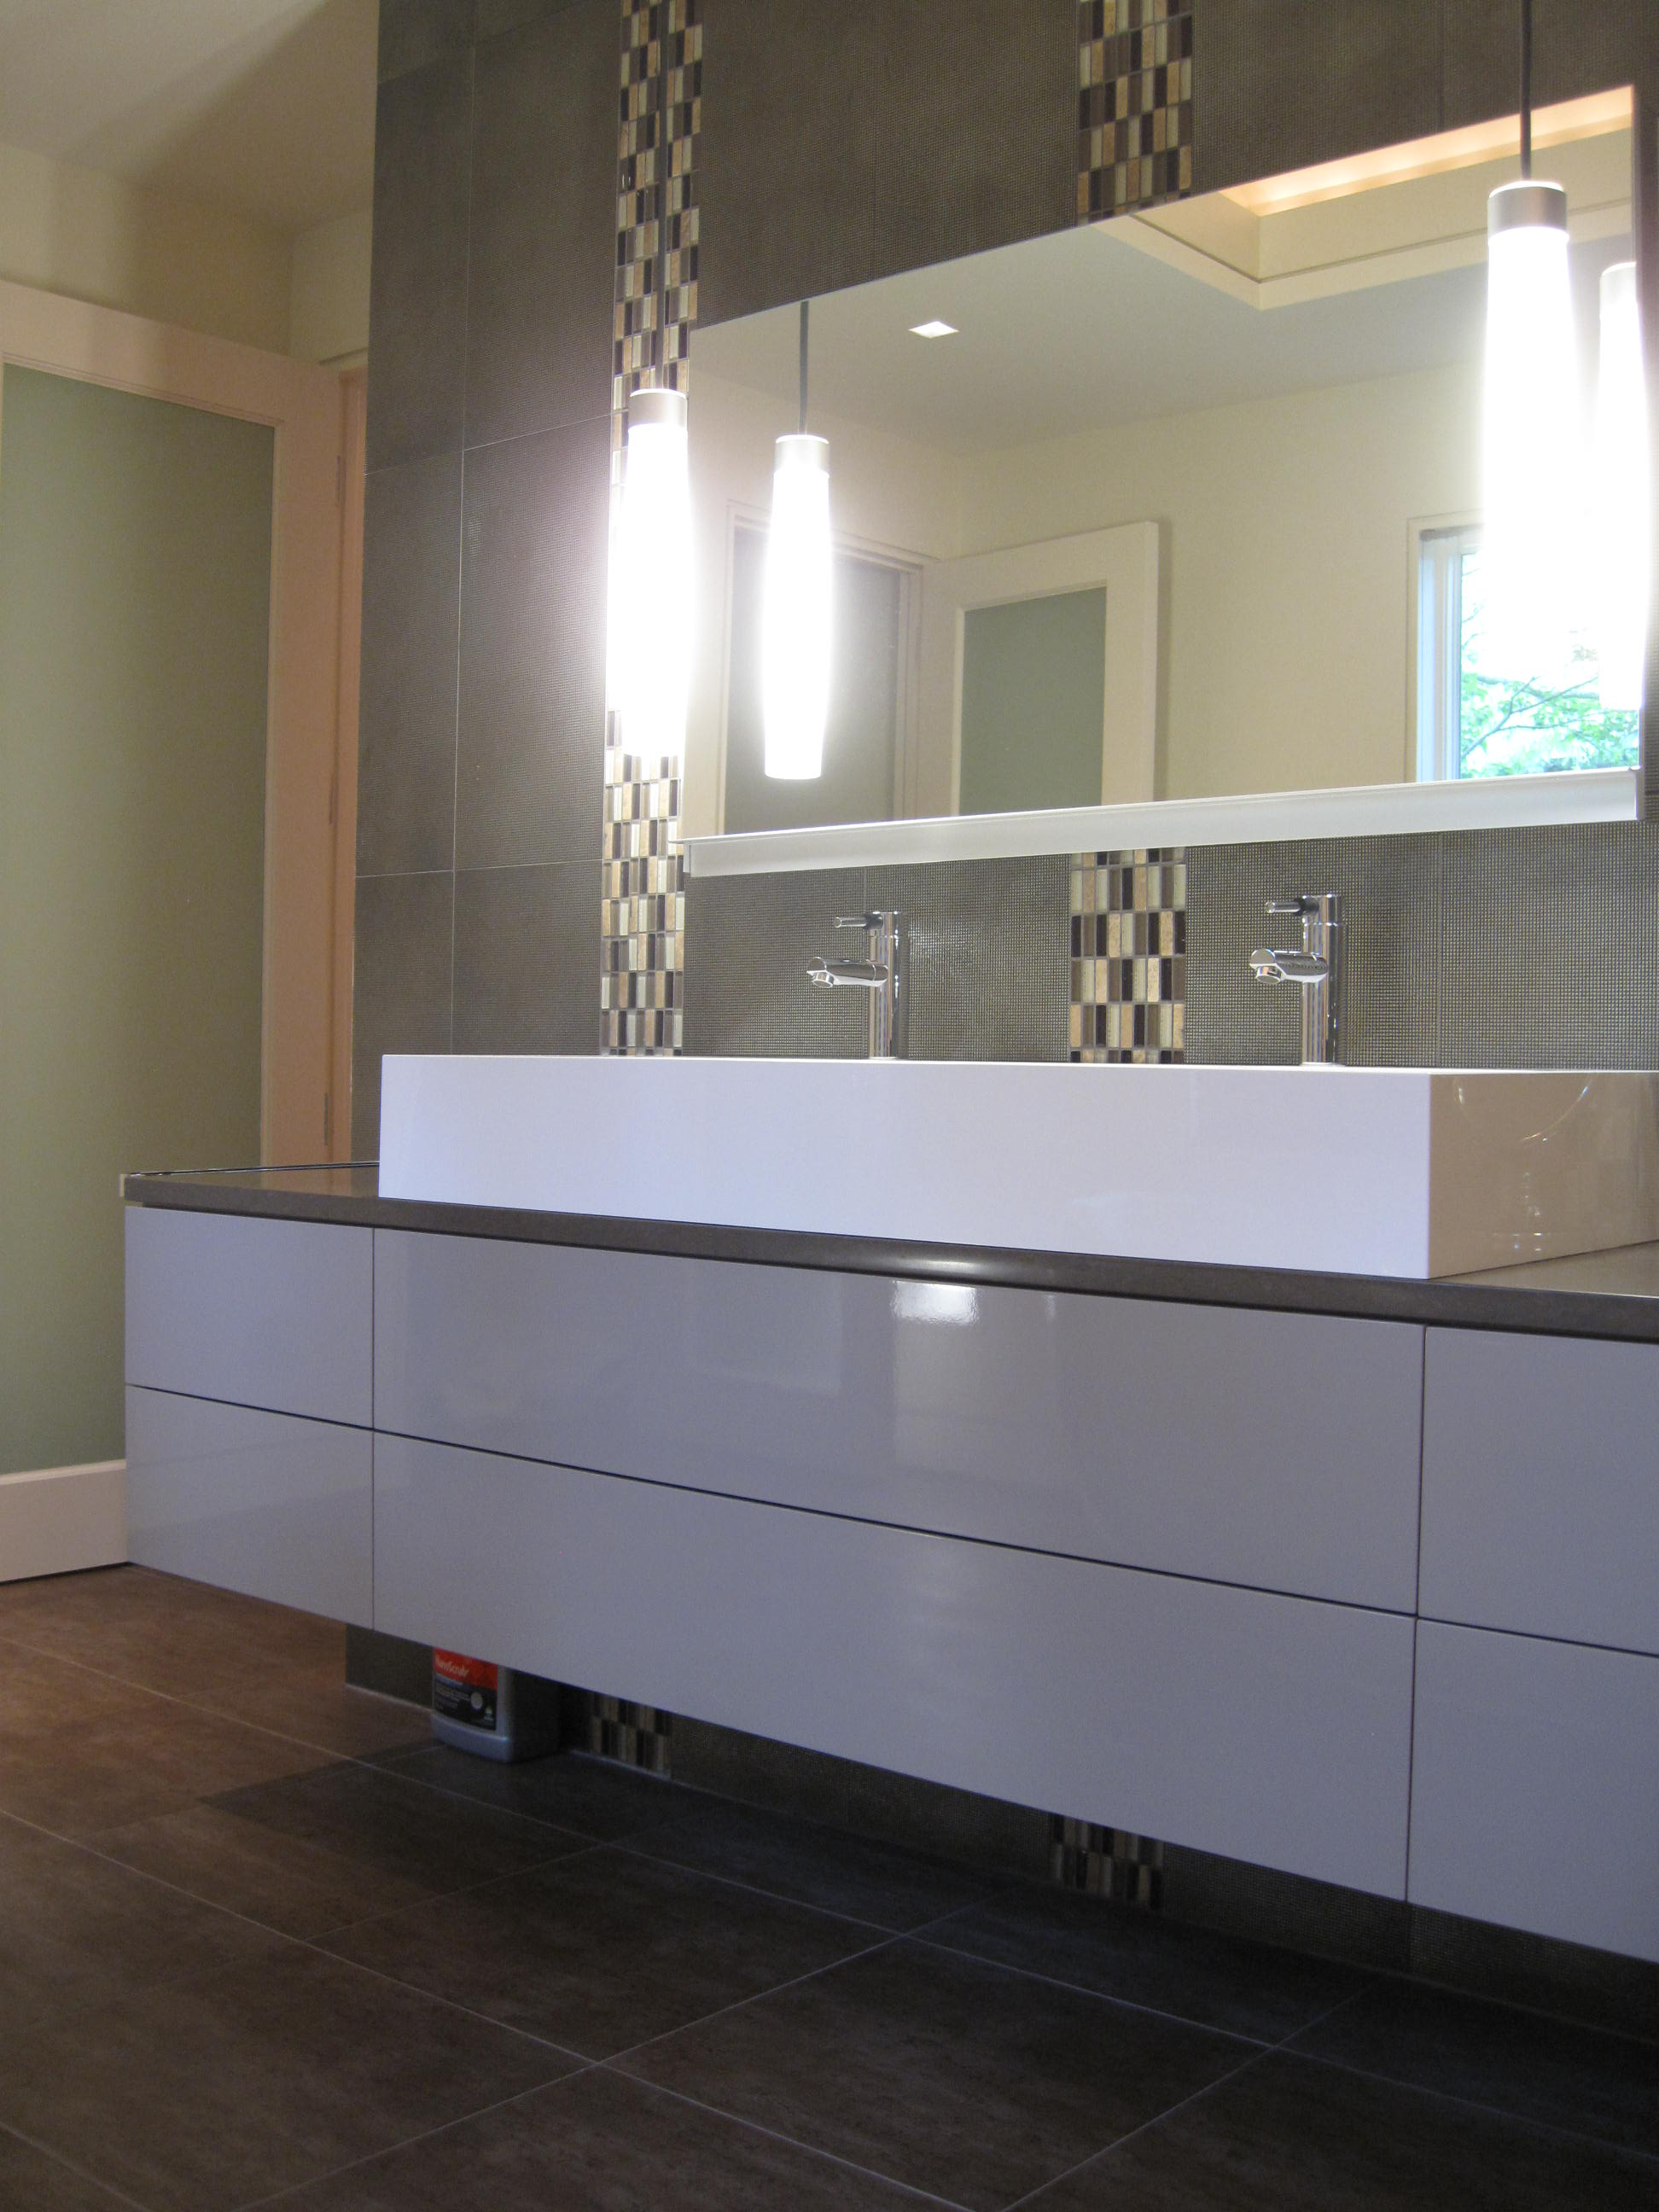 Sink and faucet area with mirror